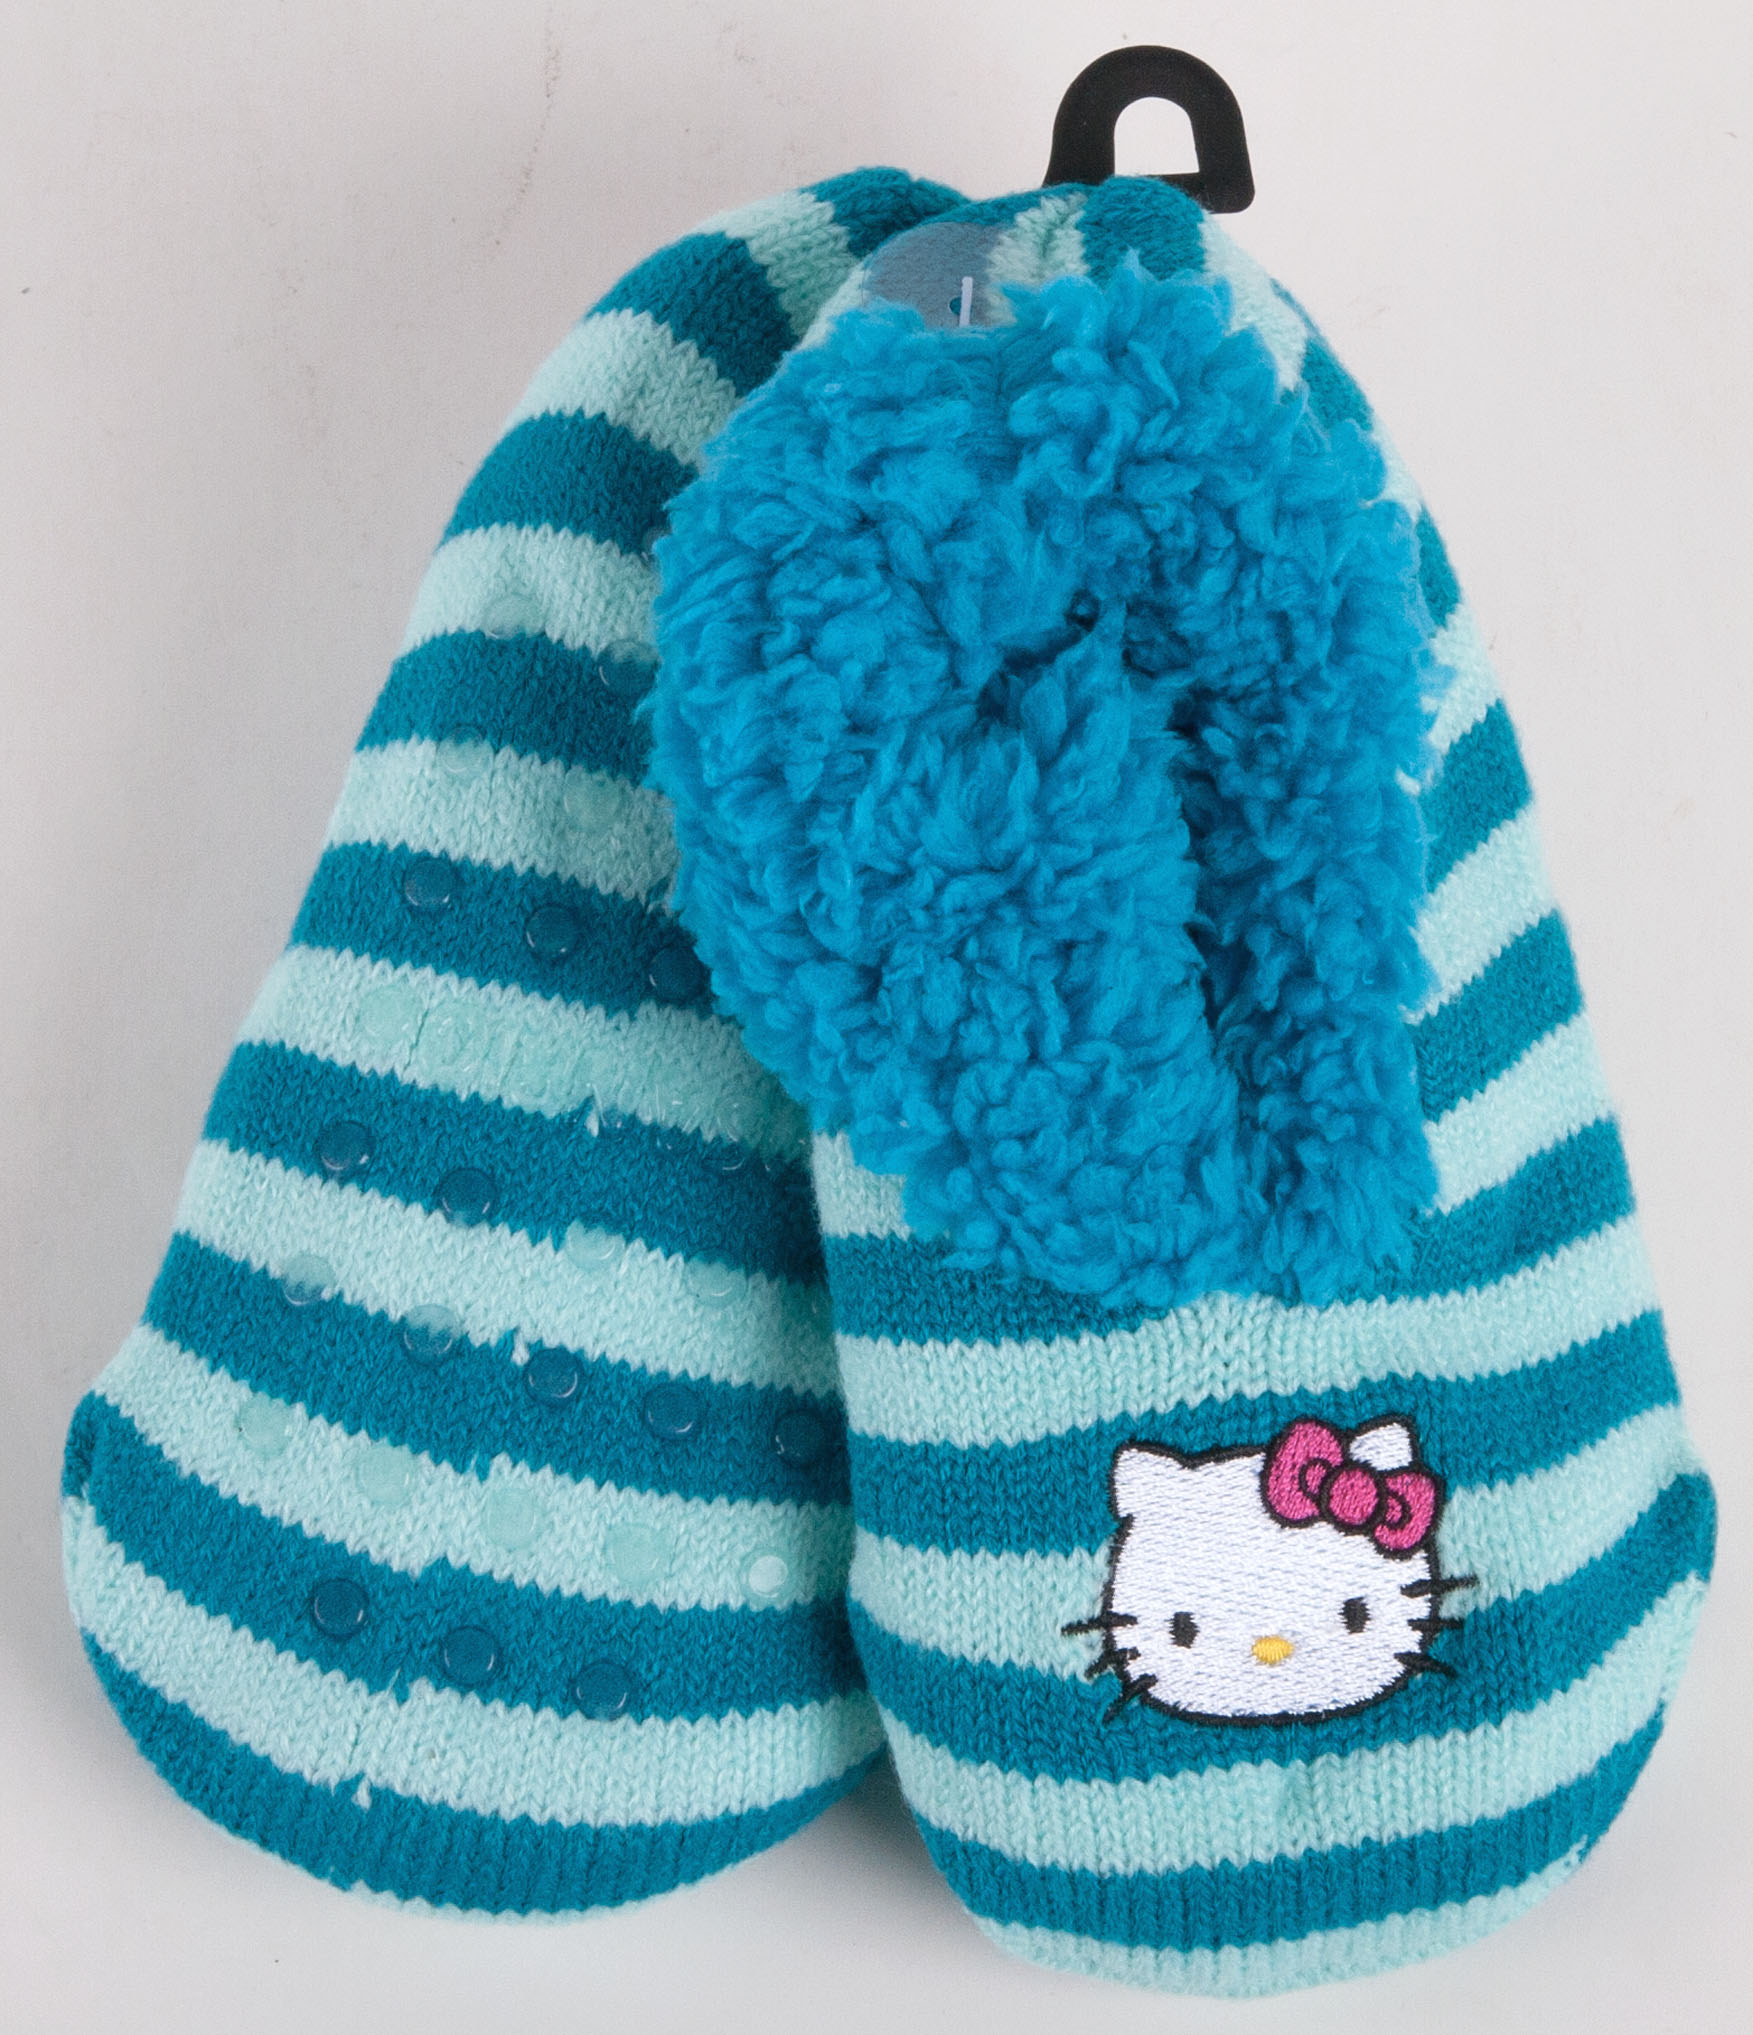 Hello Kitty Knitting Pattern Socks : Sanrio Hello Kitty Blue Knit Striped Sock Slippers Girls-4870 eBay